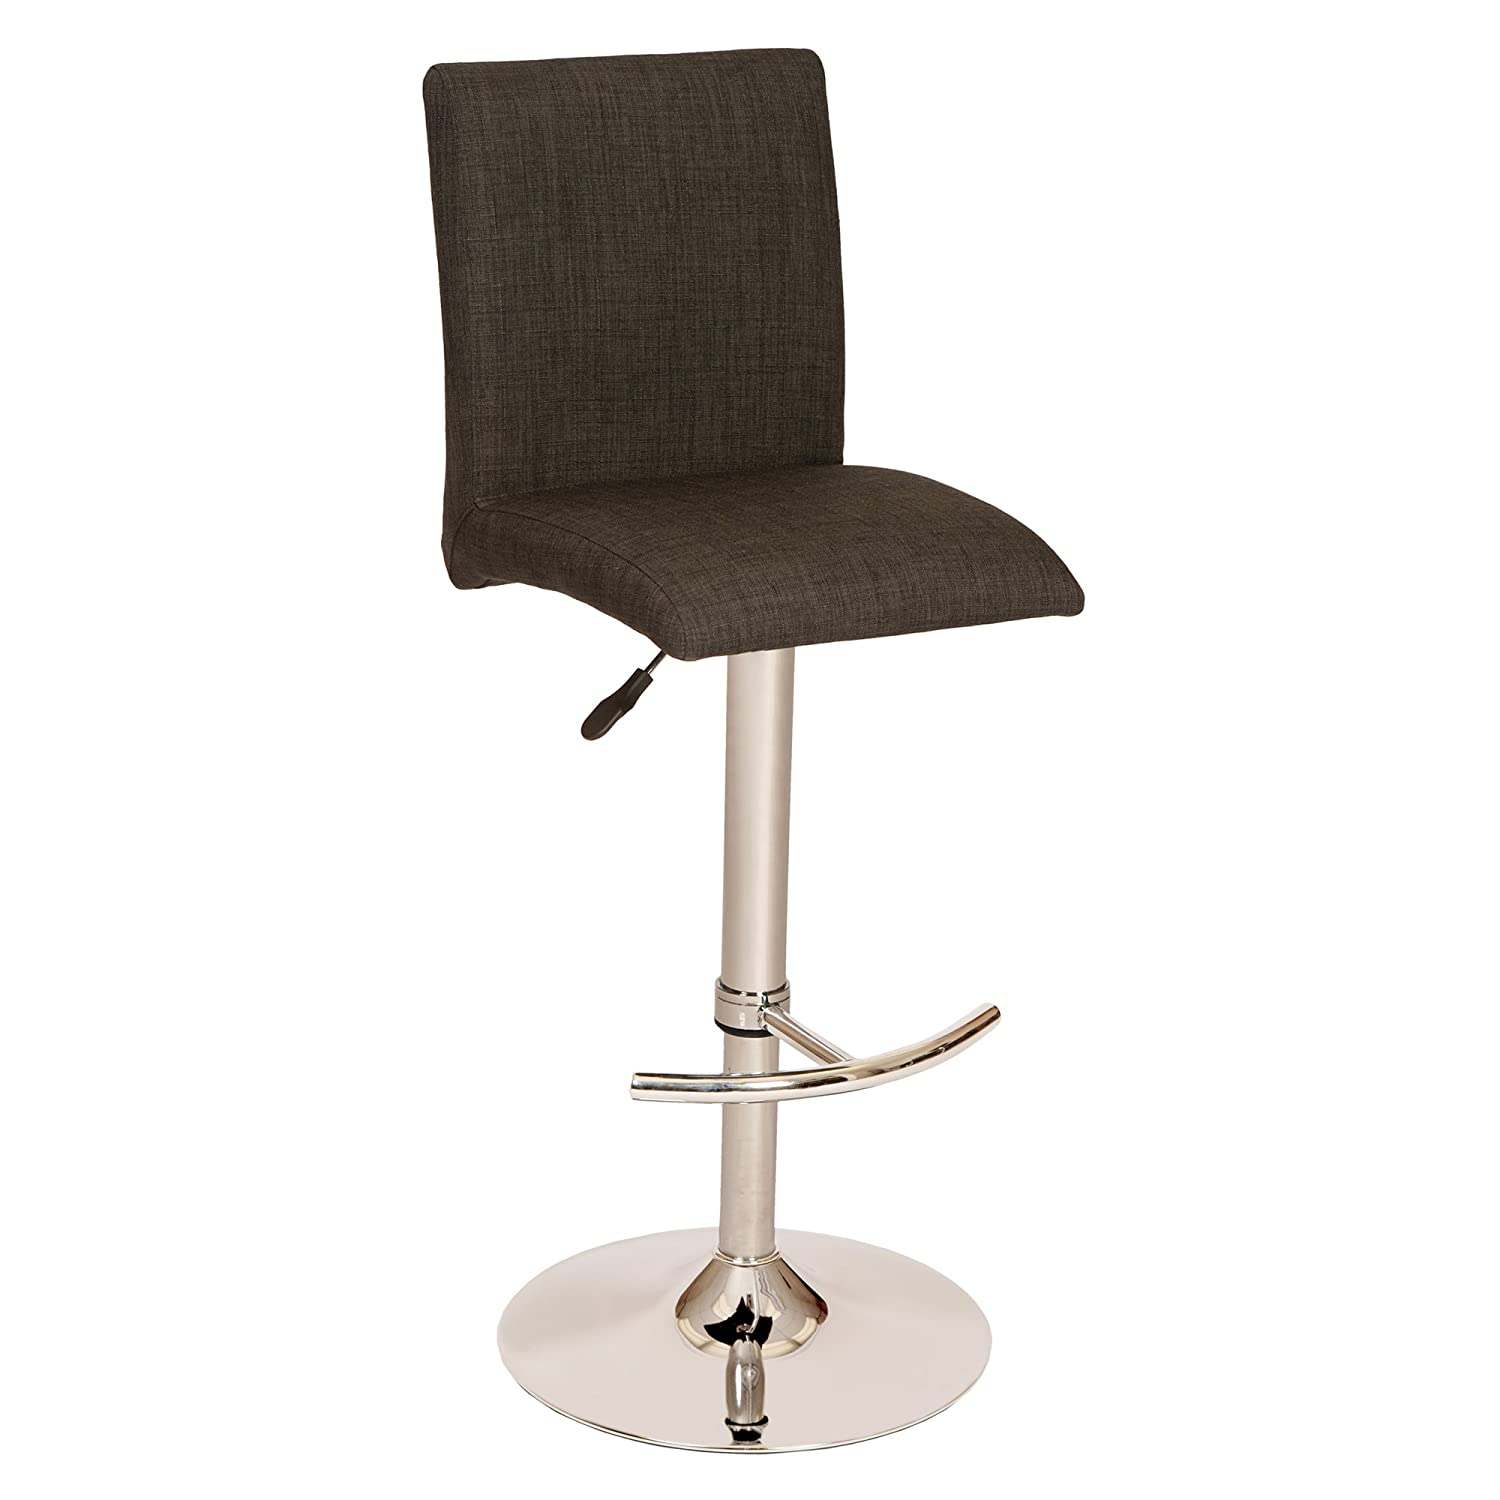 Armen Living LCLBSWBACH La Jolla Swivel Adjustable Barstool in Charcoal Fabric and Chrome Finish